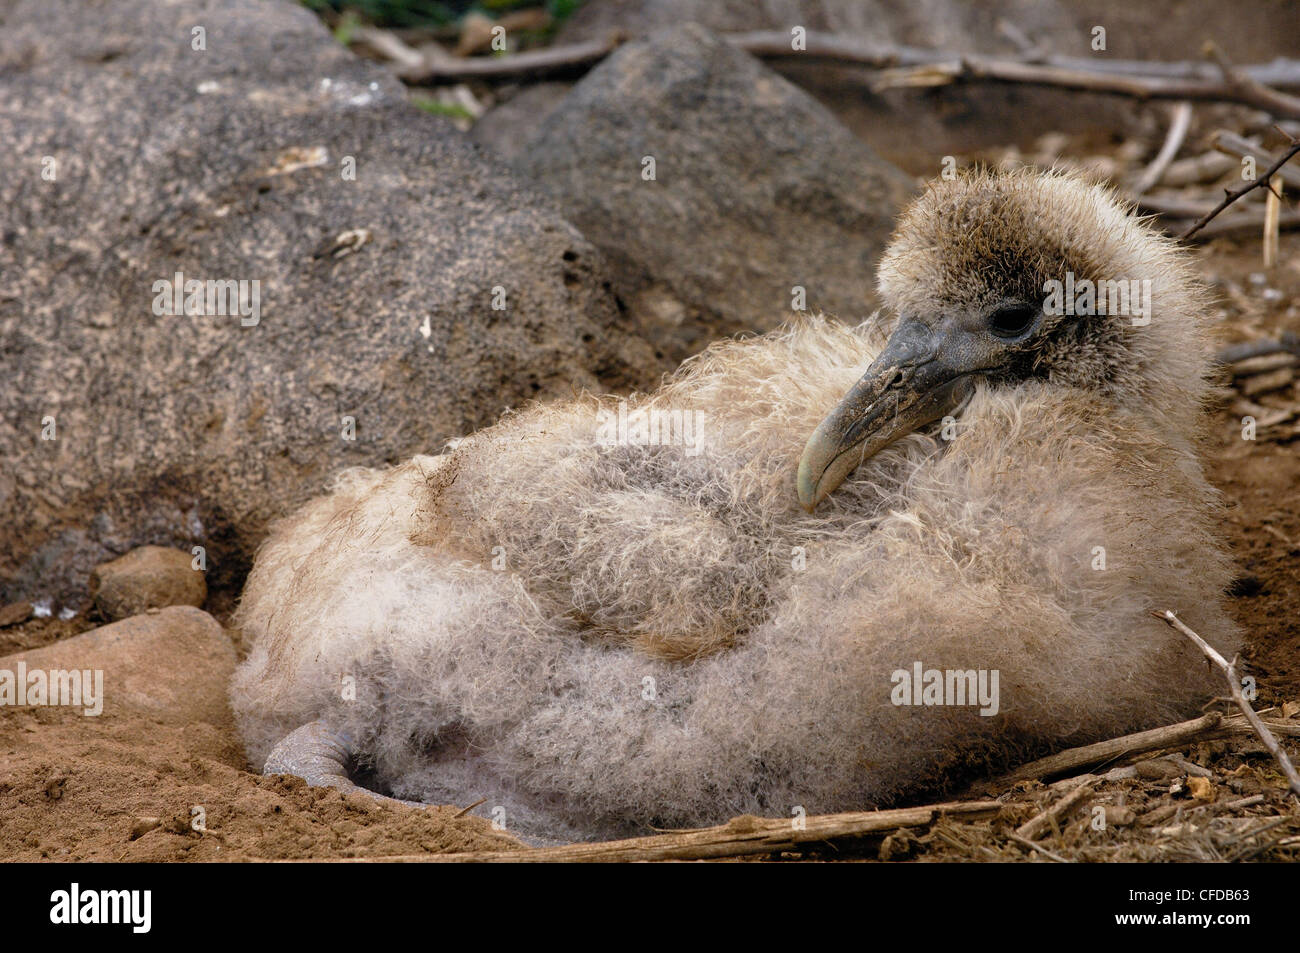 Waved Albatross chick, Galapagos Islands, Ecuador, South America. (critically endangered) - Stock Image